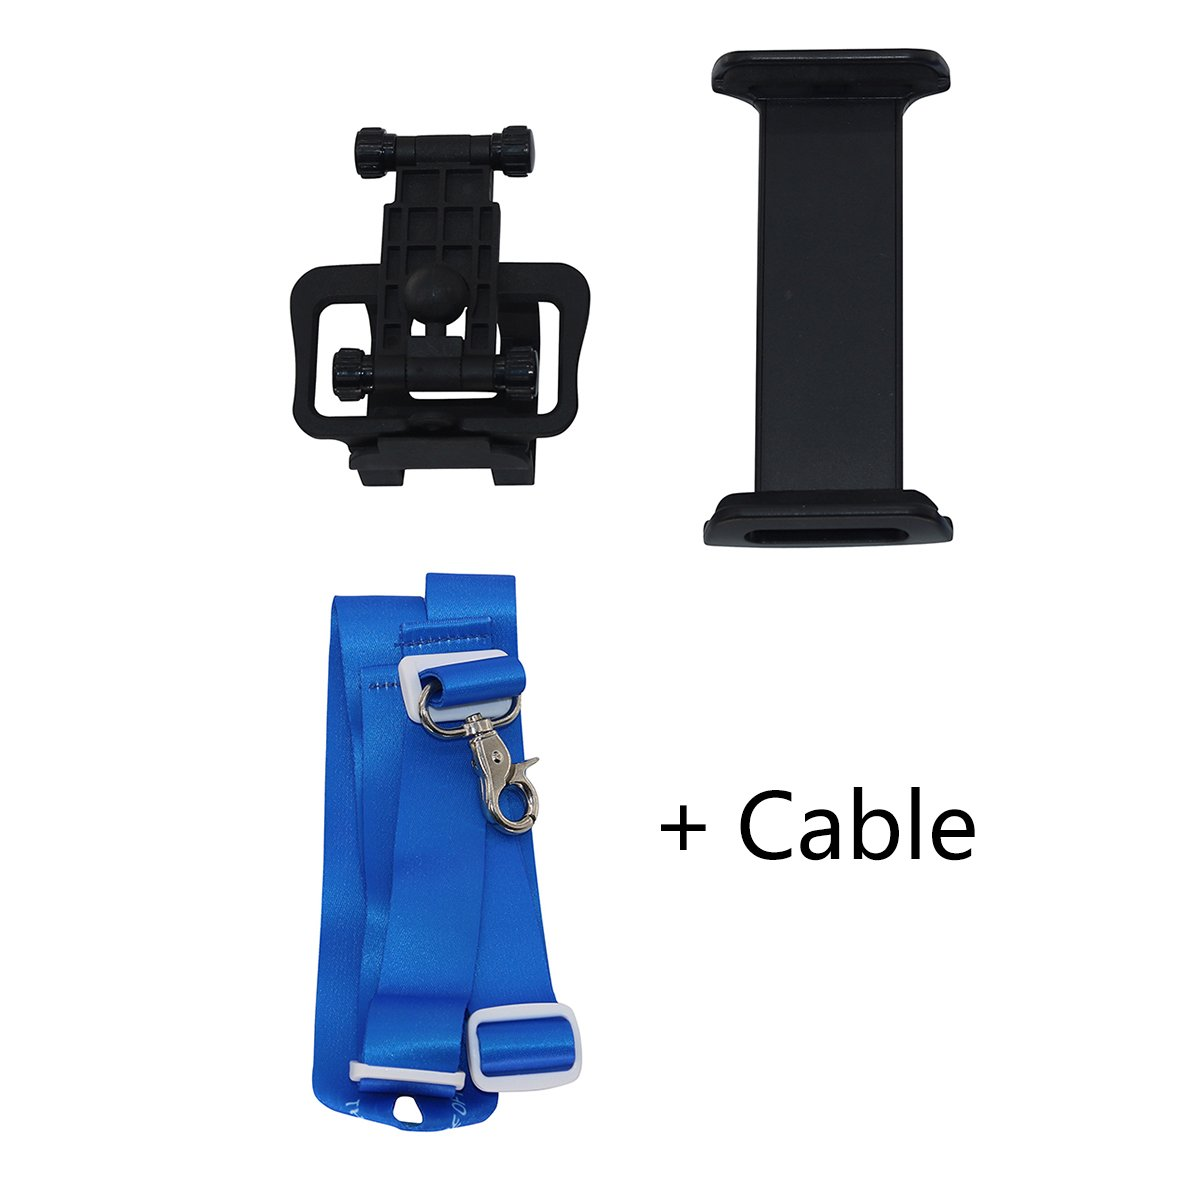 Remote Controller Device Holder Foldable 4-10 Inch Phone Tablet Extended Mount with Lanyard Neck Strap + Data Cable Line for IOS DJI Mavic Air Pro Platinum, Spark